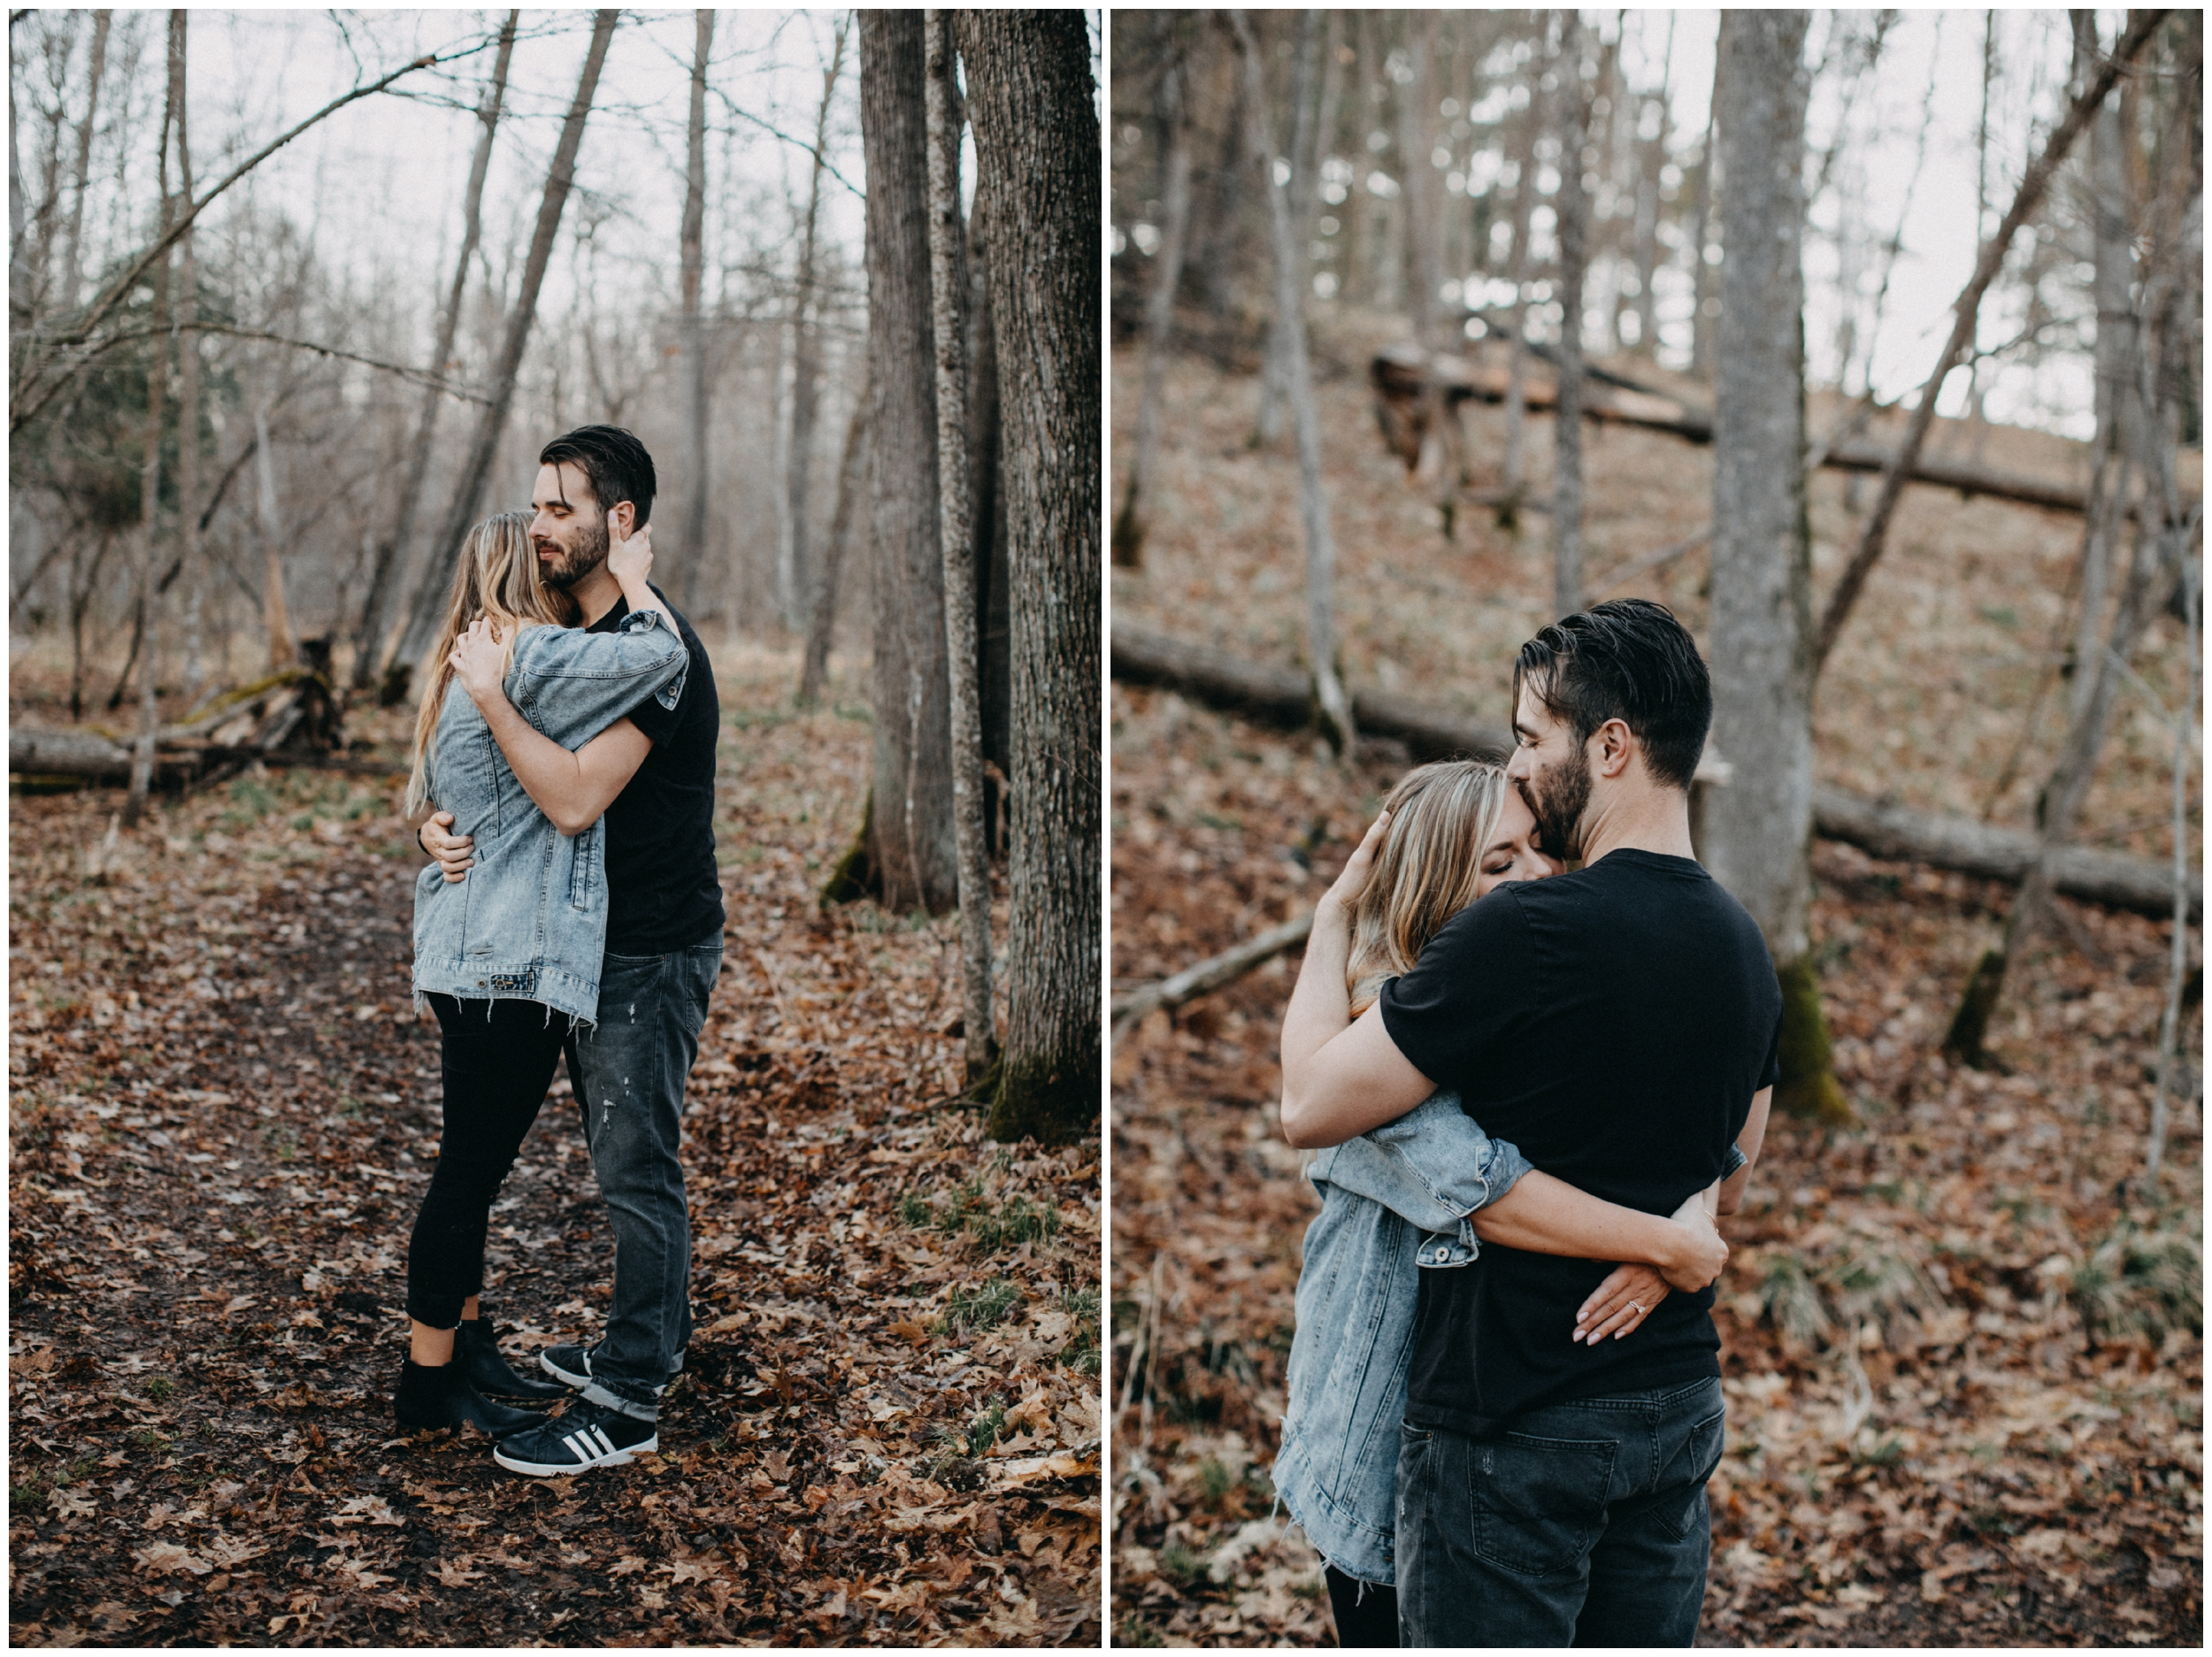 Intimate engagement session in the woods by Brainerd photographer Britt DeZeeuw